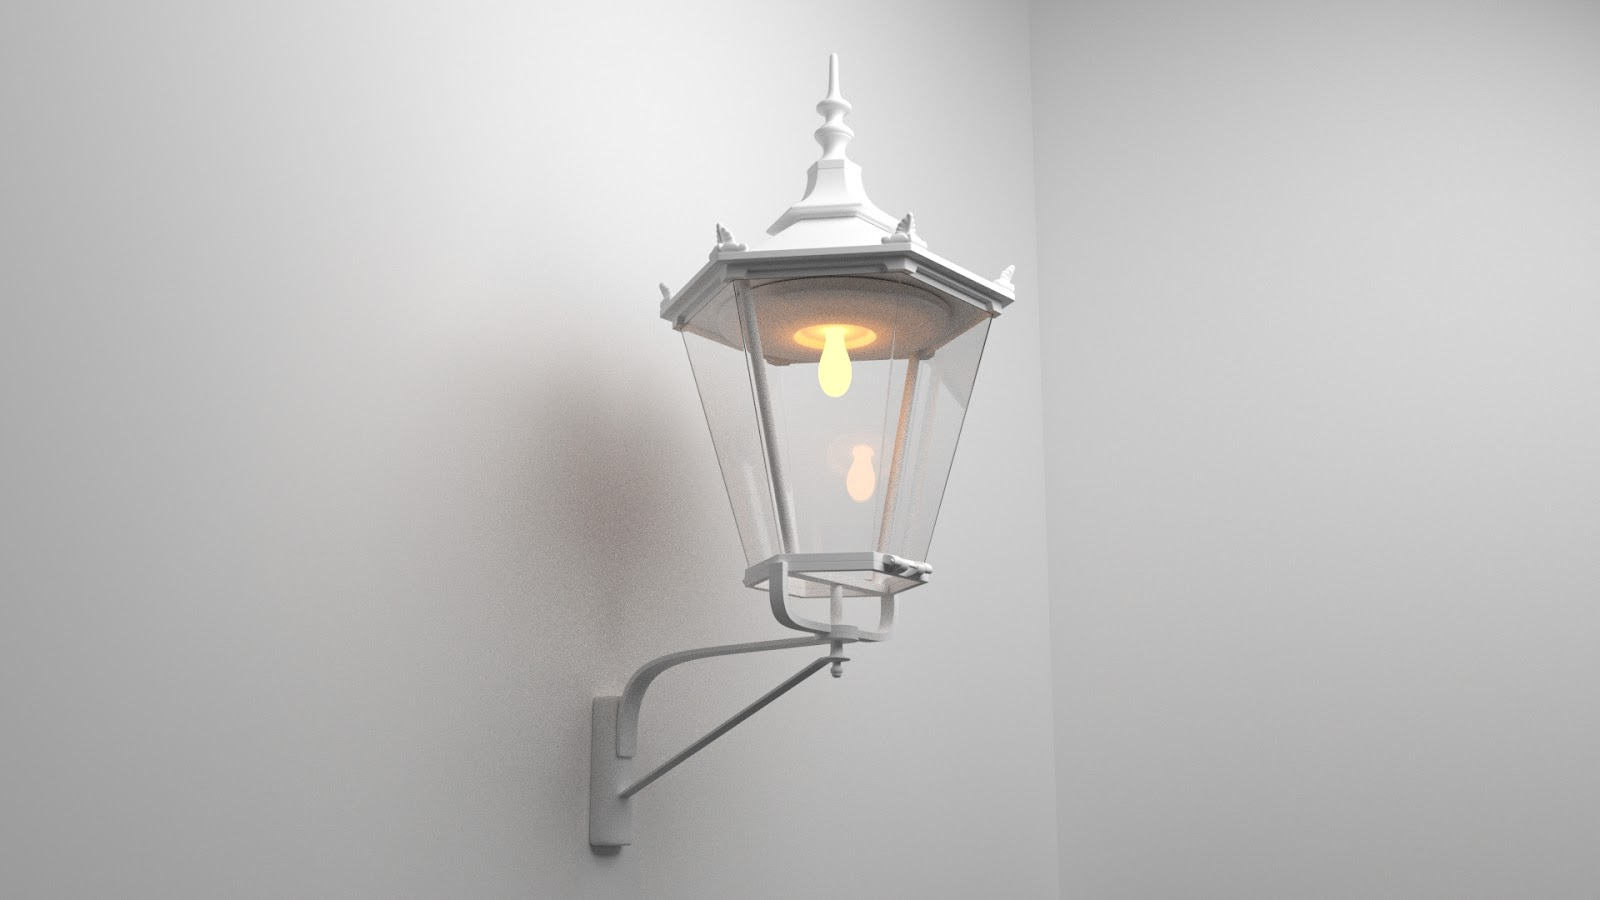 Free 3D Wall Lamp .blend file